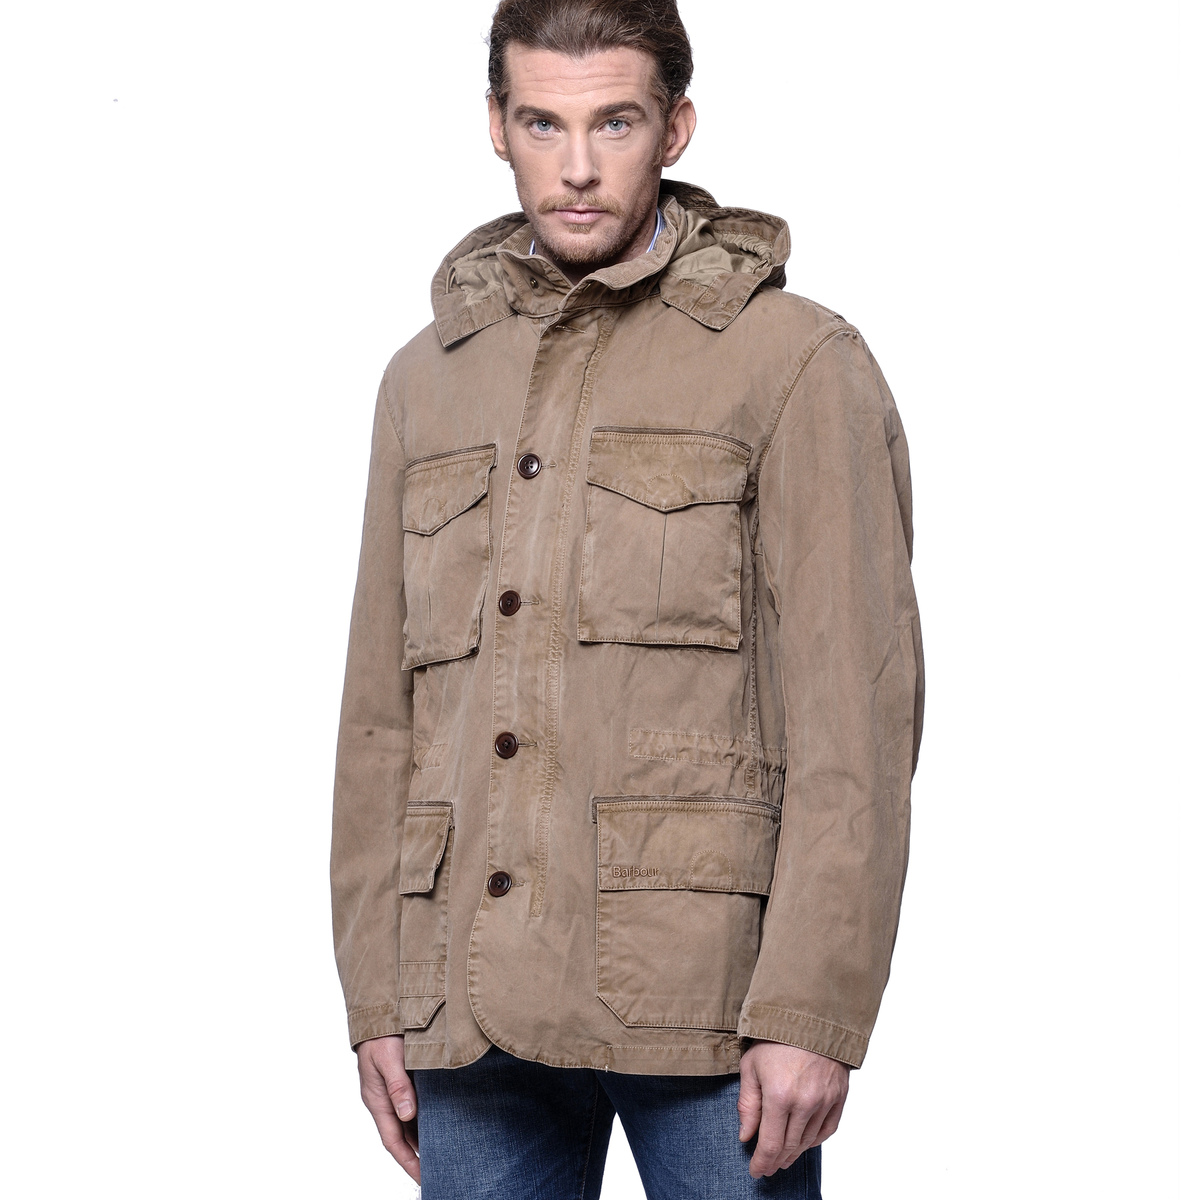 Barbour Giacca Modello Field Jacket In Cotone Stone Solant